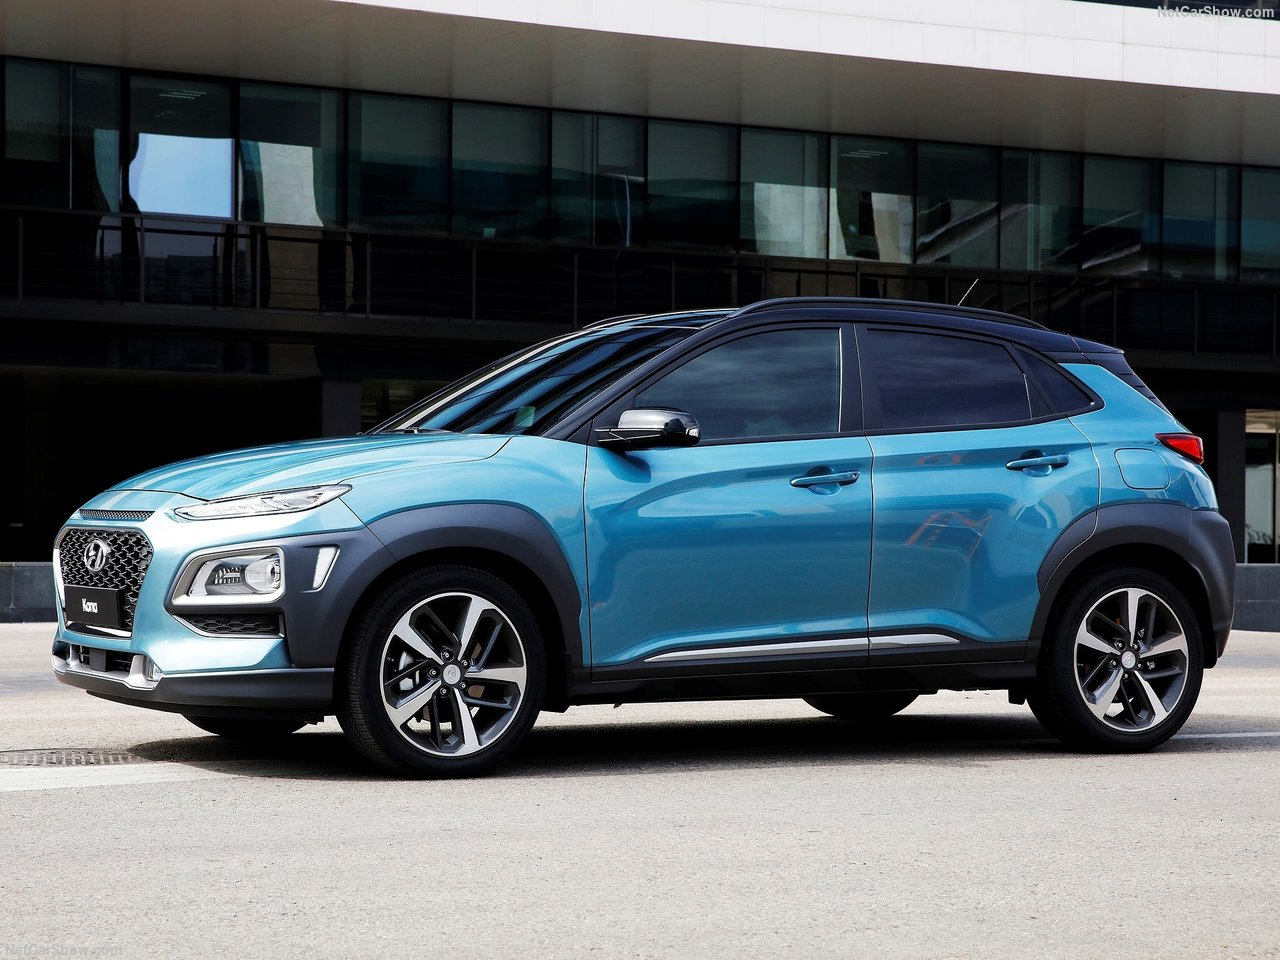 Hyundai Kona photo 178491